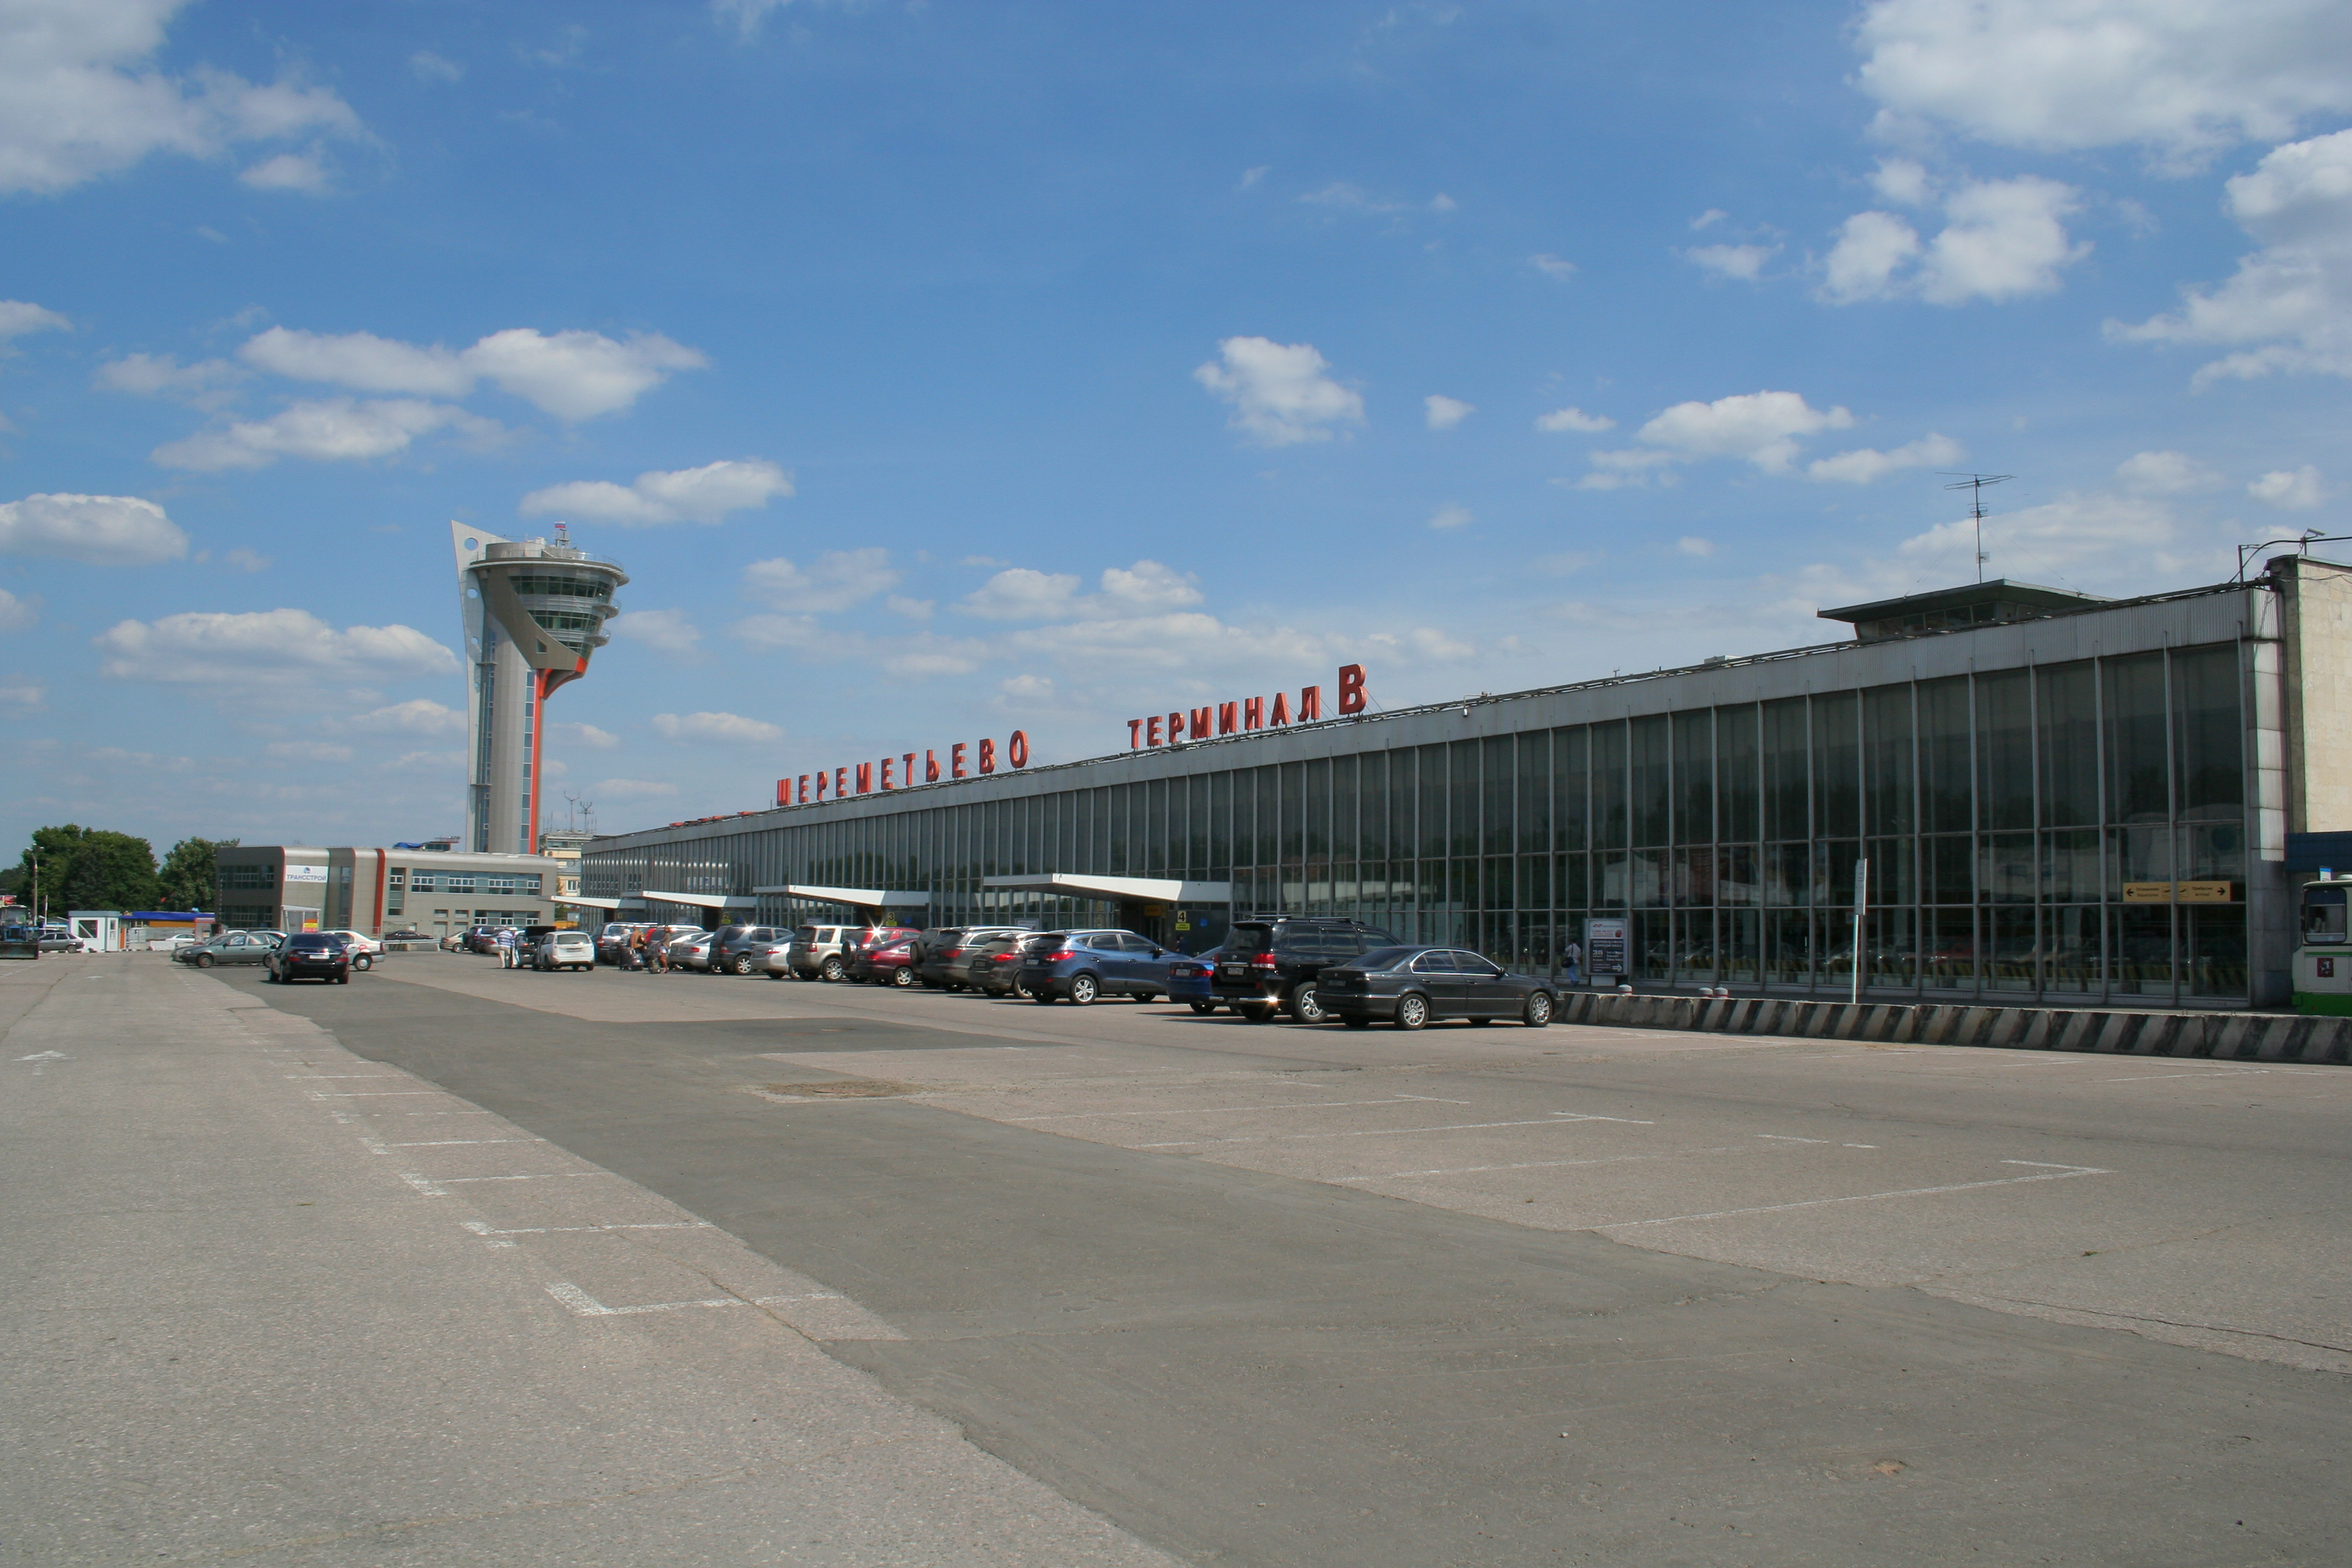 http://upload.wikimedia.org/wikipedia/commons/7/7d/SVO_Terminal_B_building.jpg